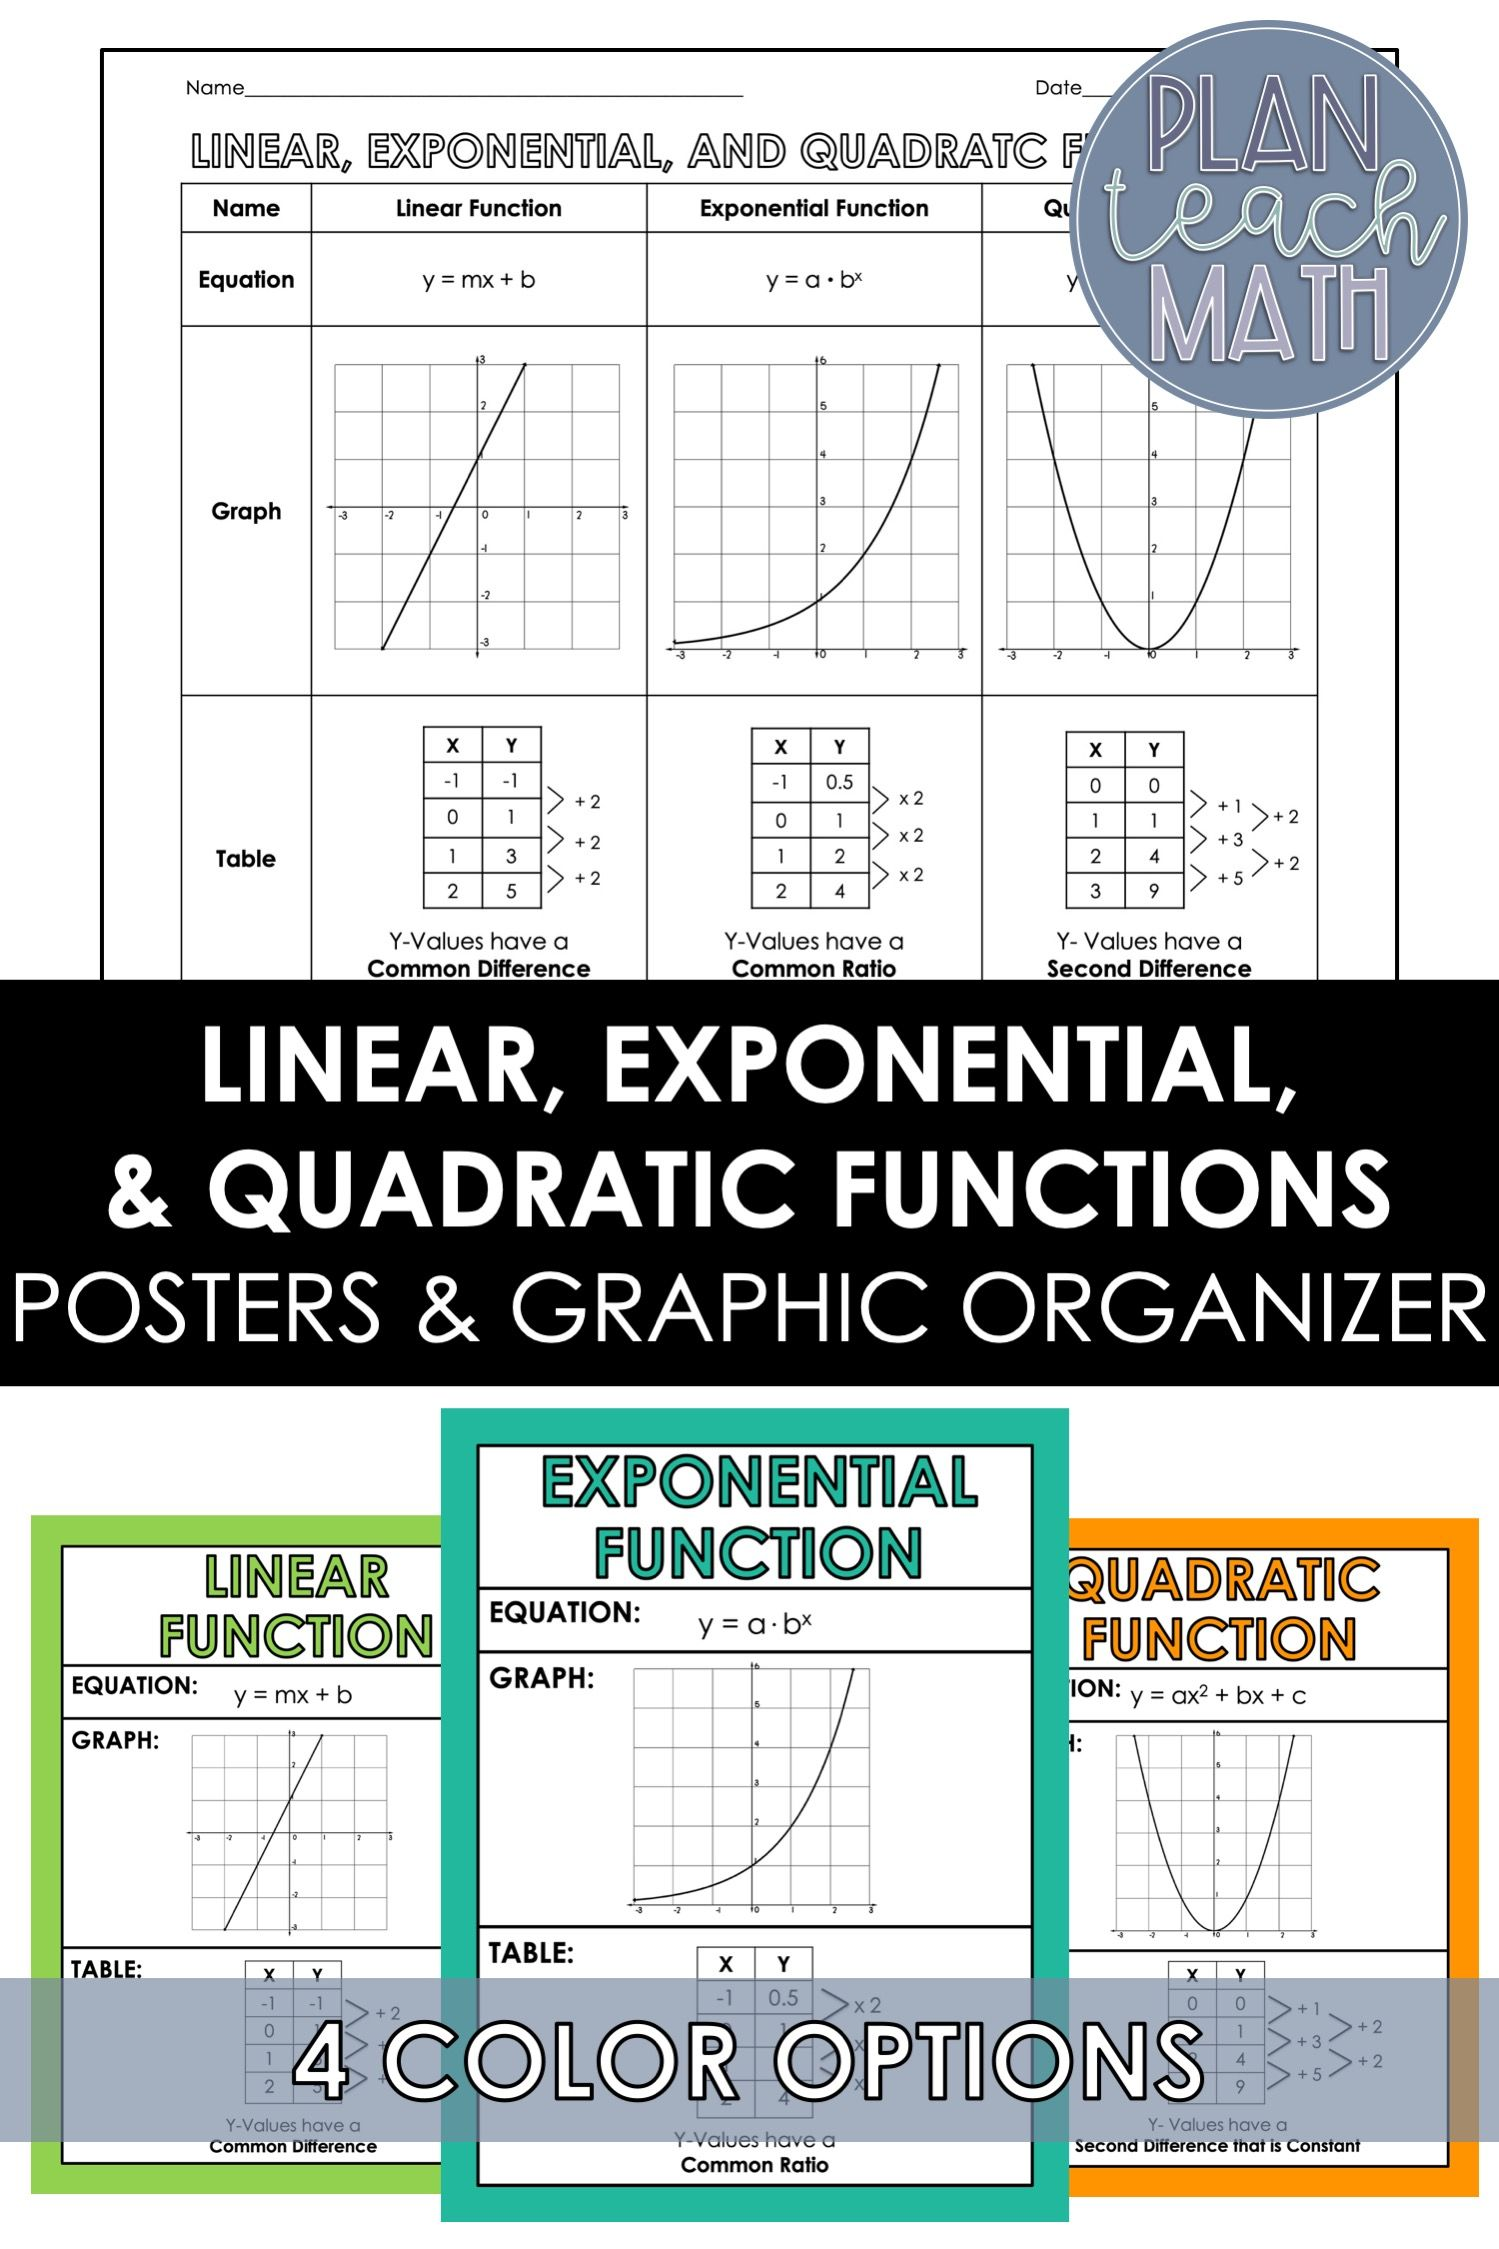 Posters Compare Linear Functions Exponential Functions